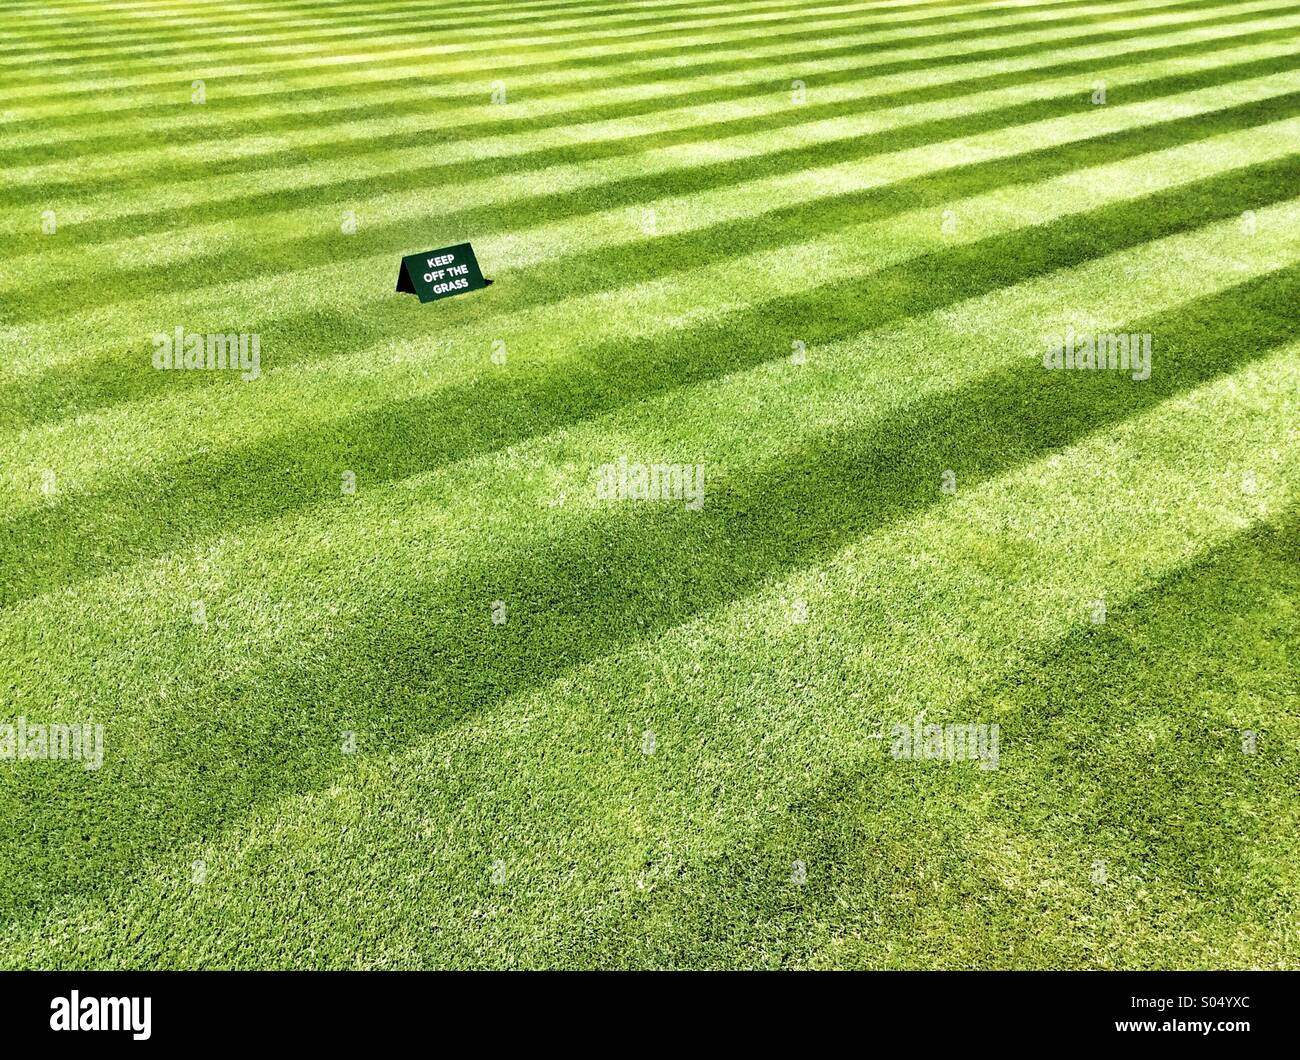 Perfectly mown grass lawn with stripes and keep of the grass sign - Stock Image